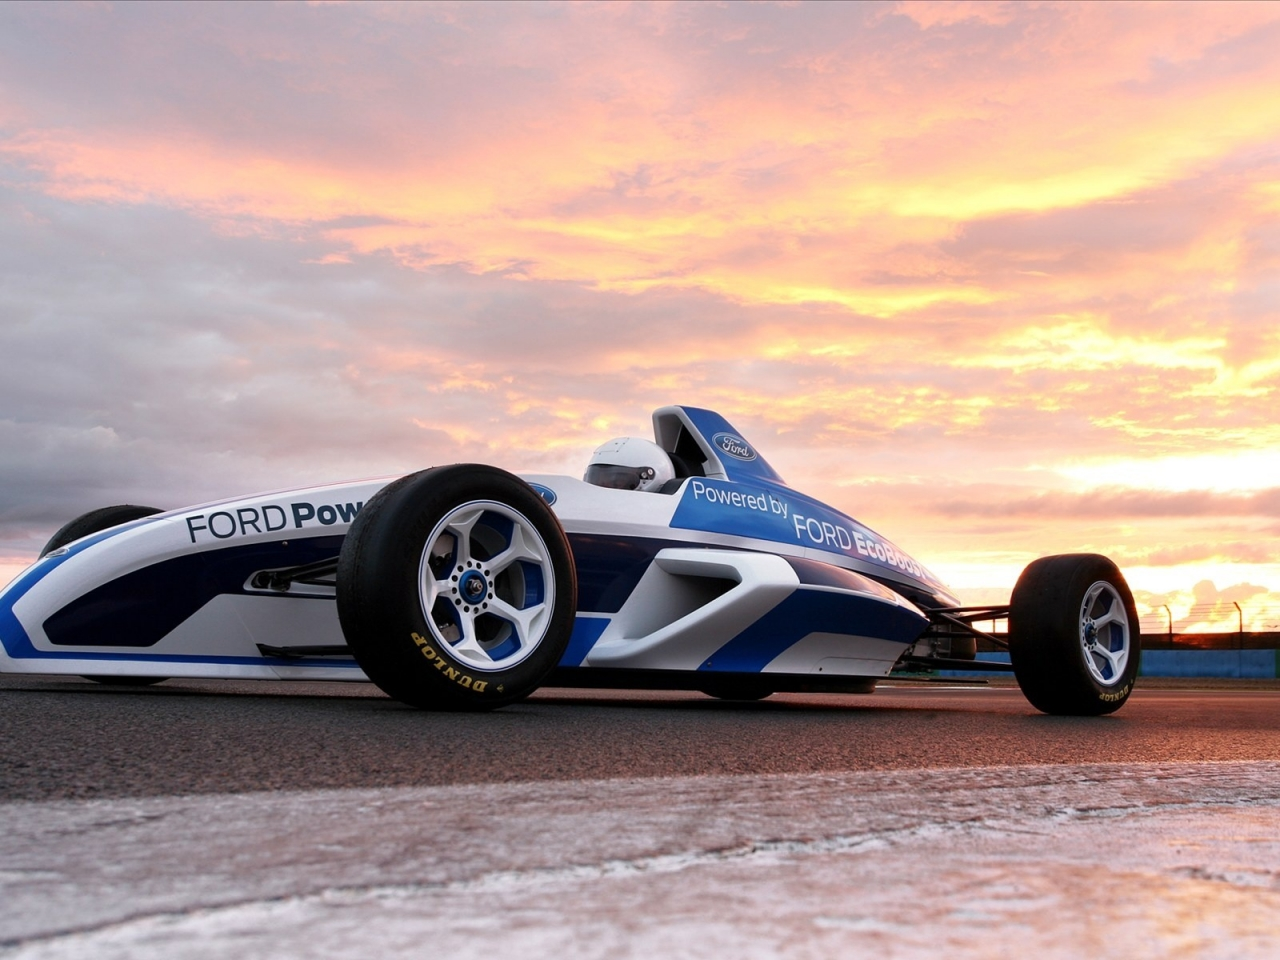 Ford Power F1 - 1280x960